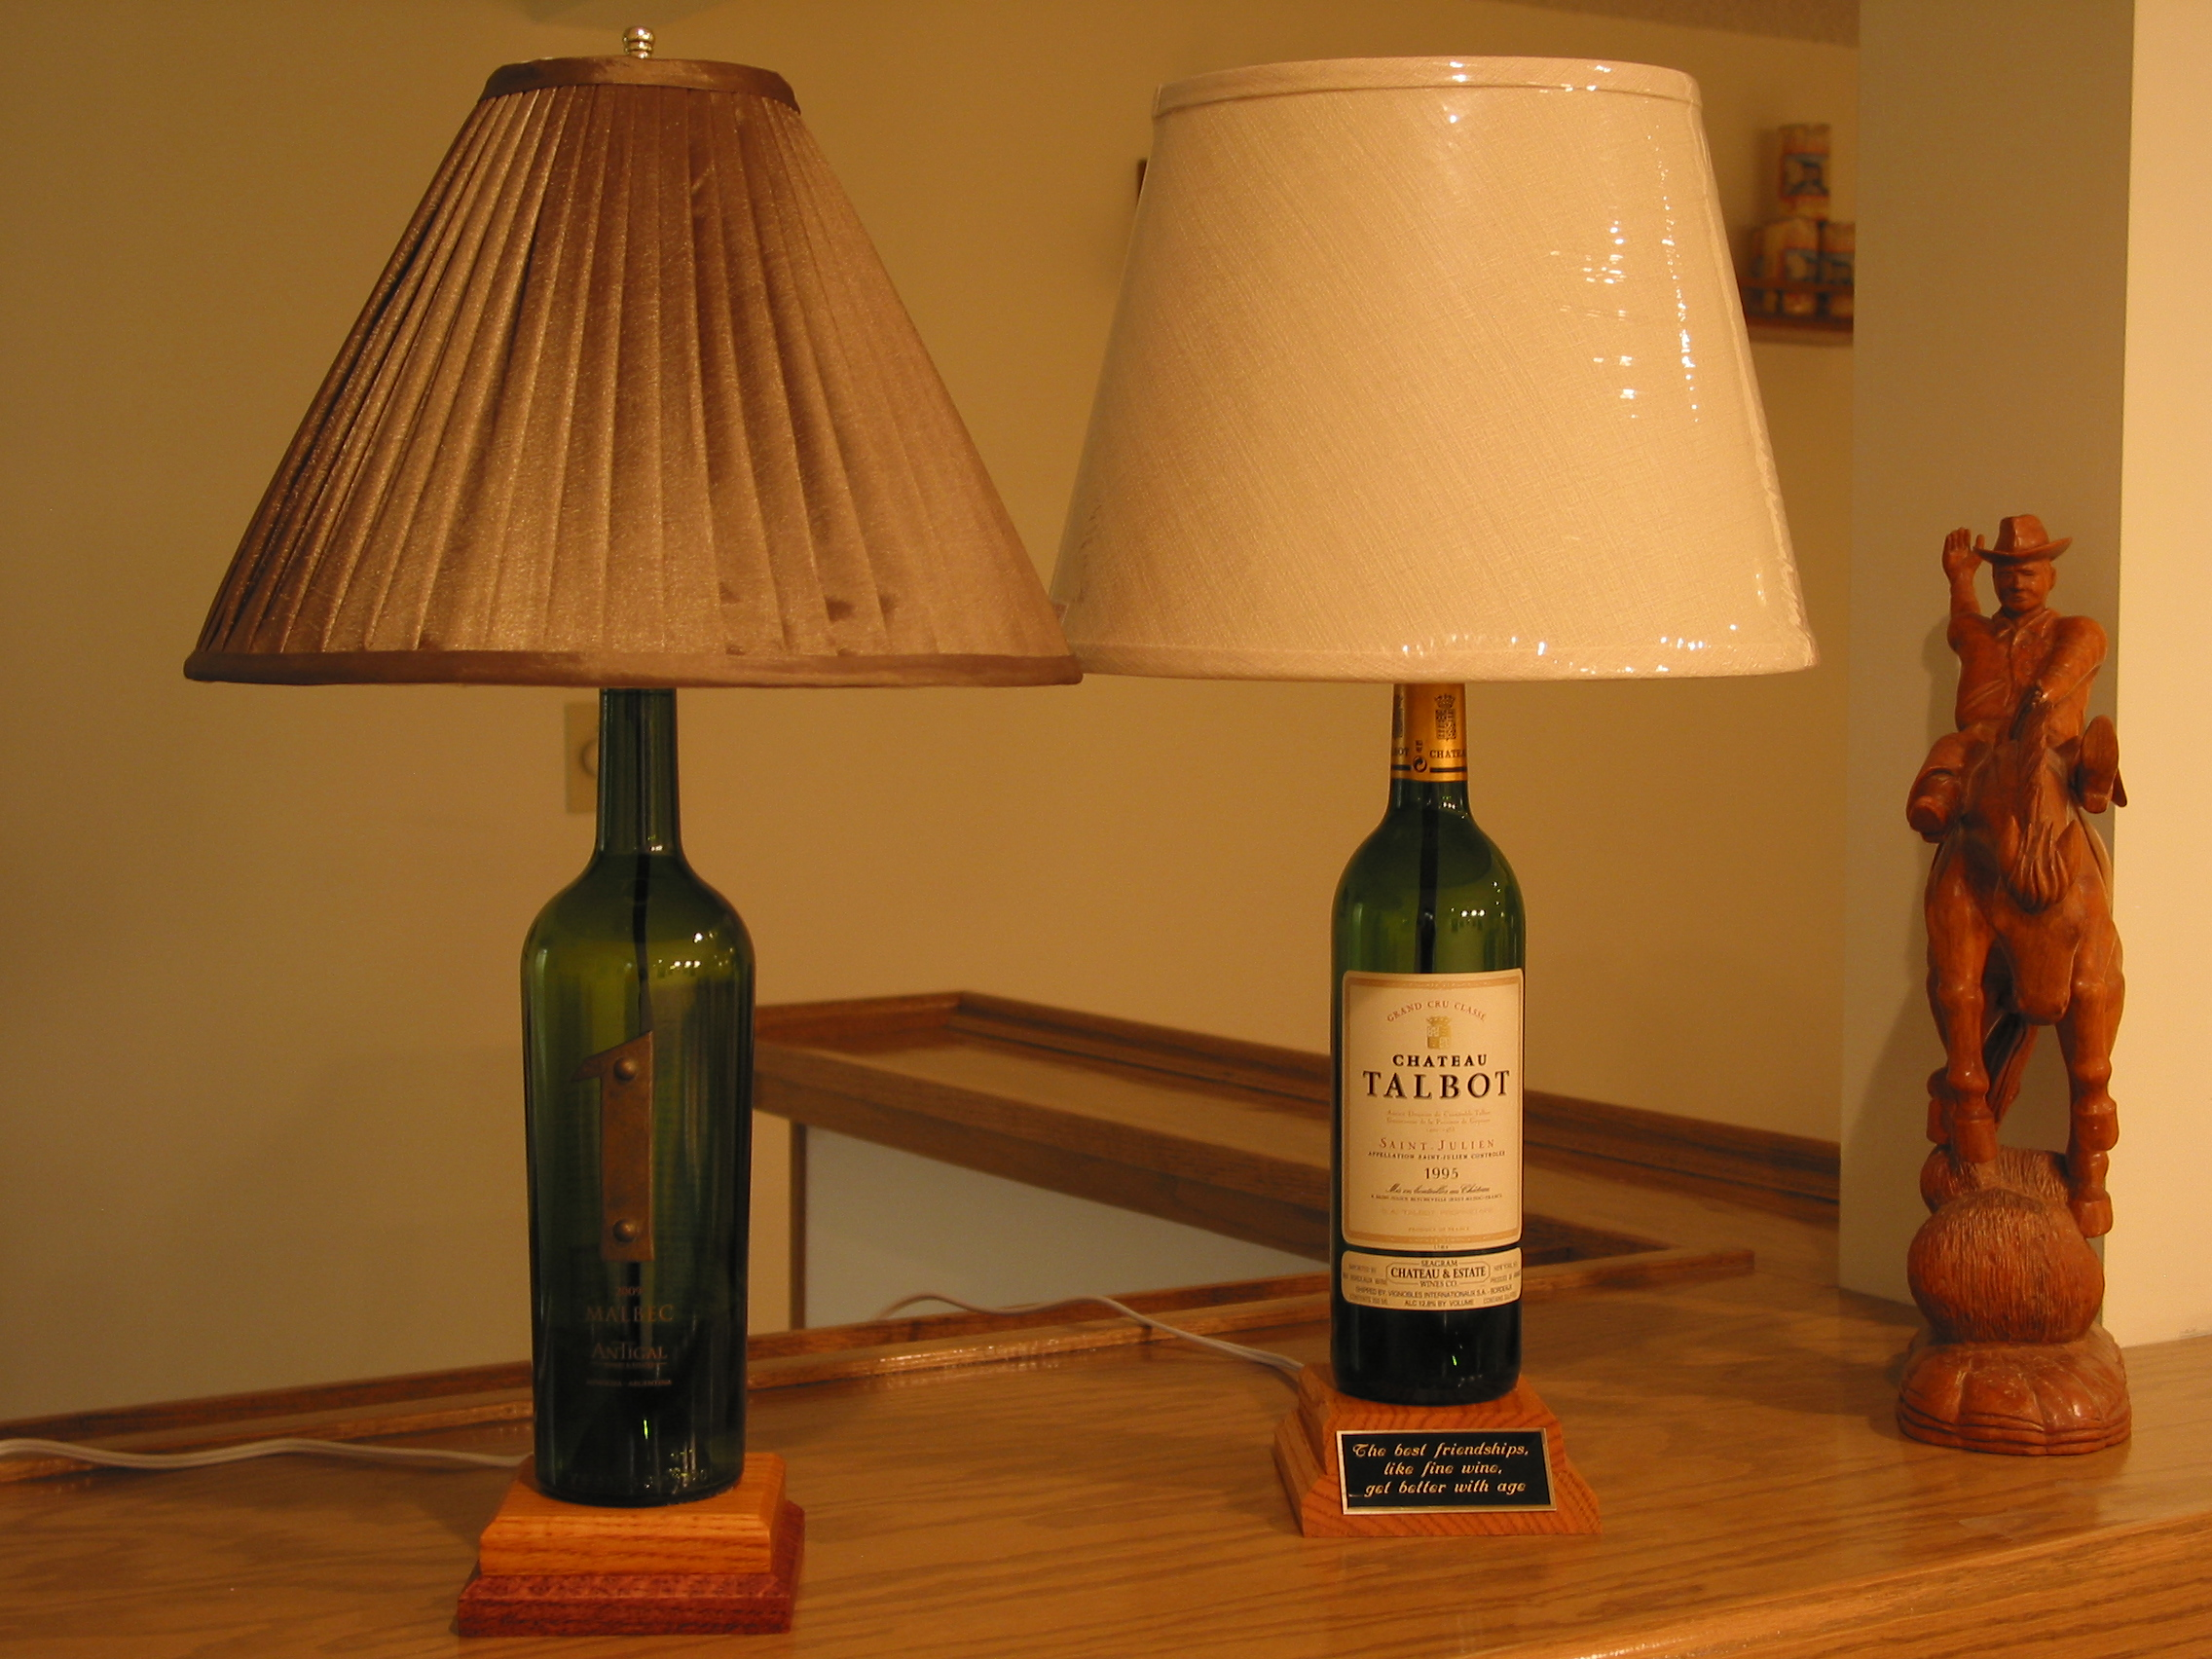 Picture of Remember - the Sentiment the Lamp Conveys Is What Makes It Special